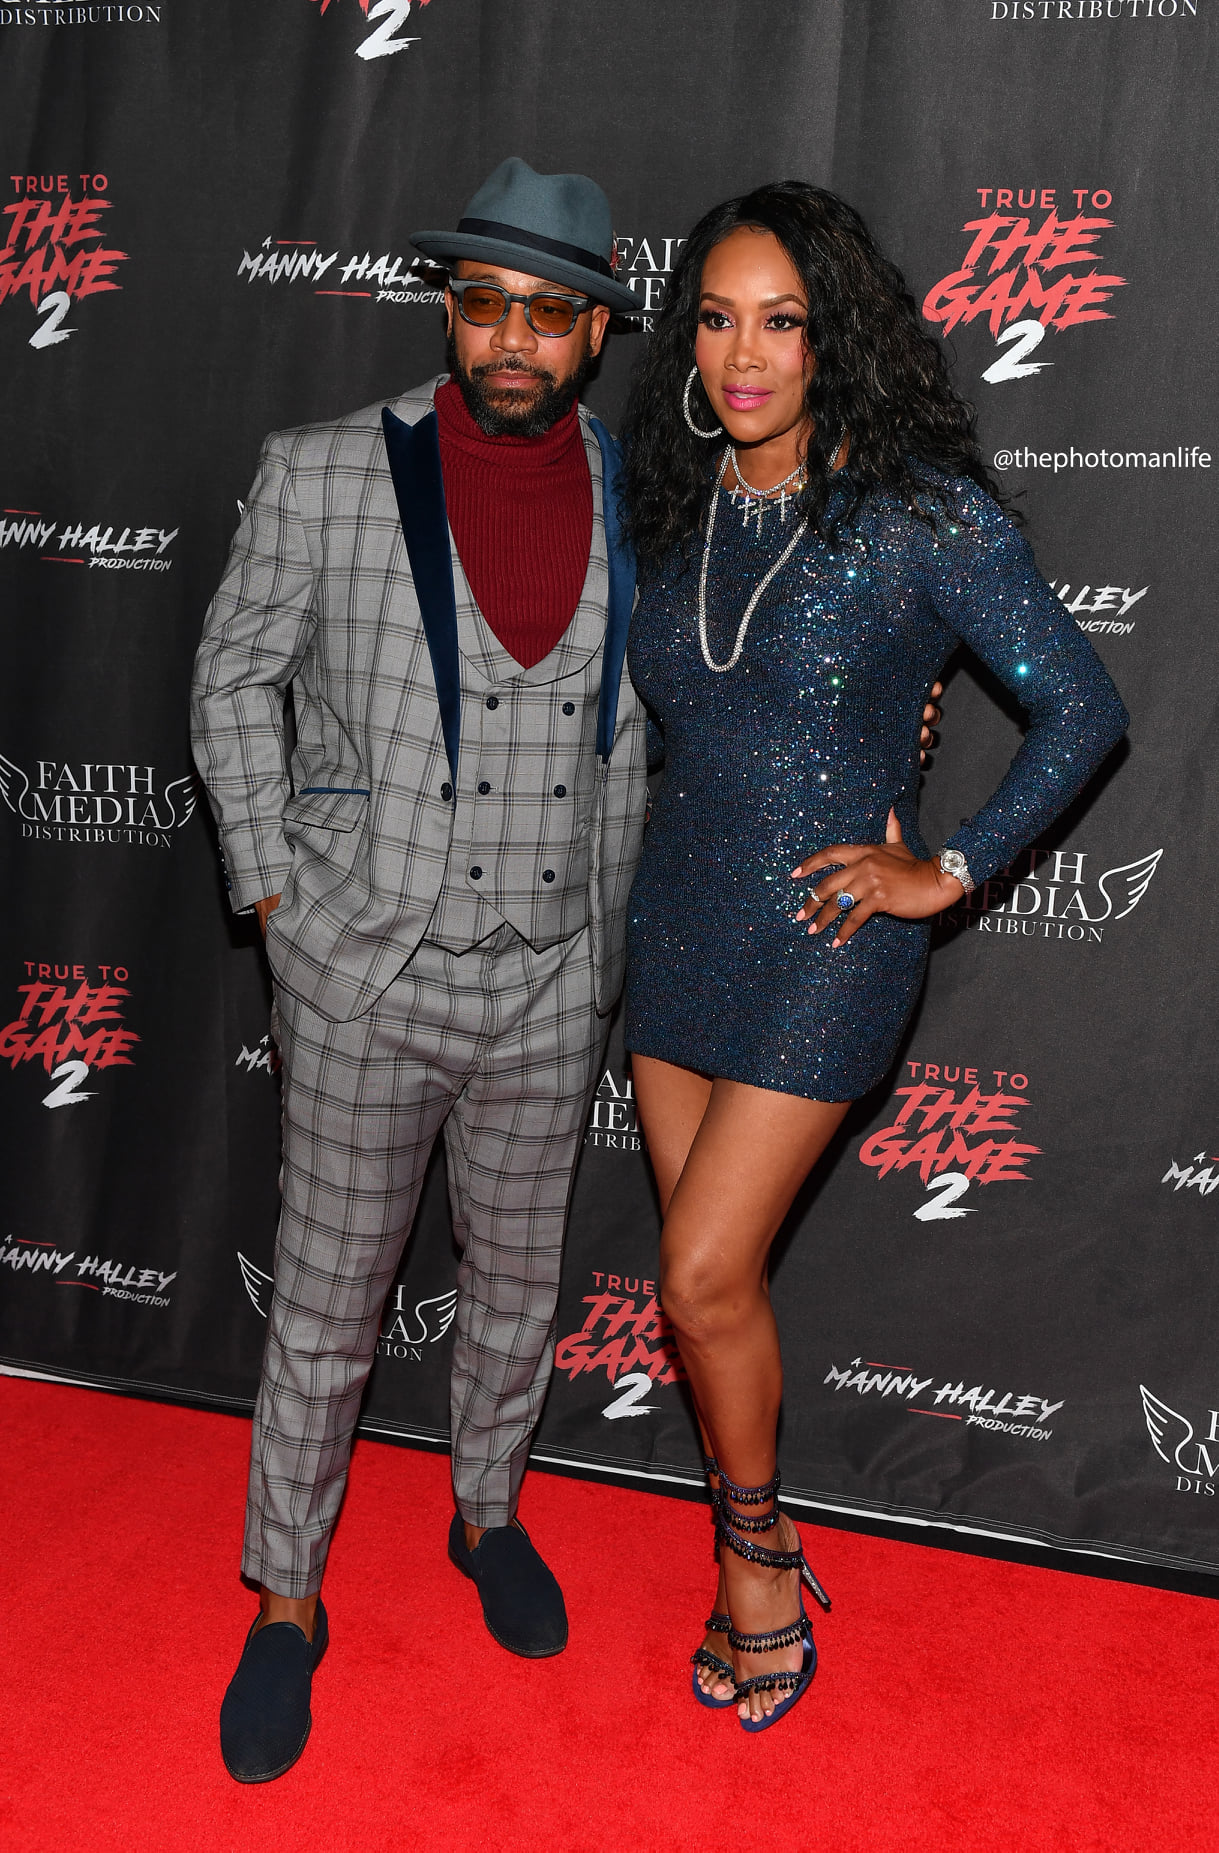 Red Carpet Premiere: True To The Game 2 In Atlanta